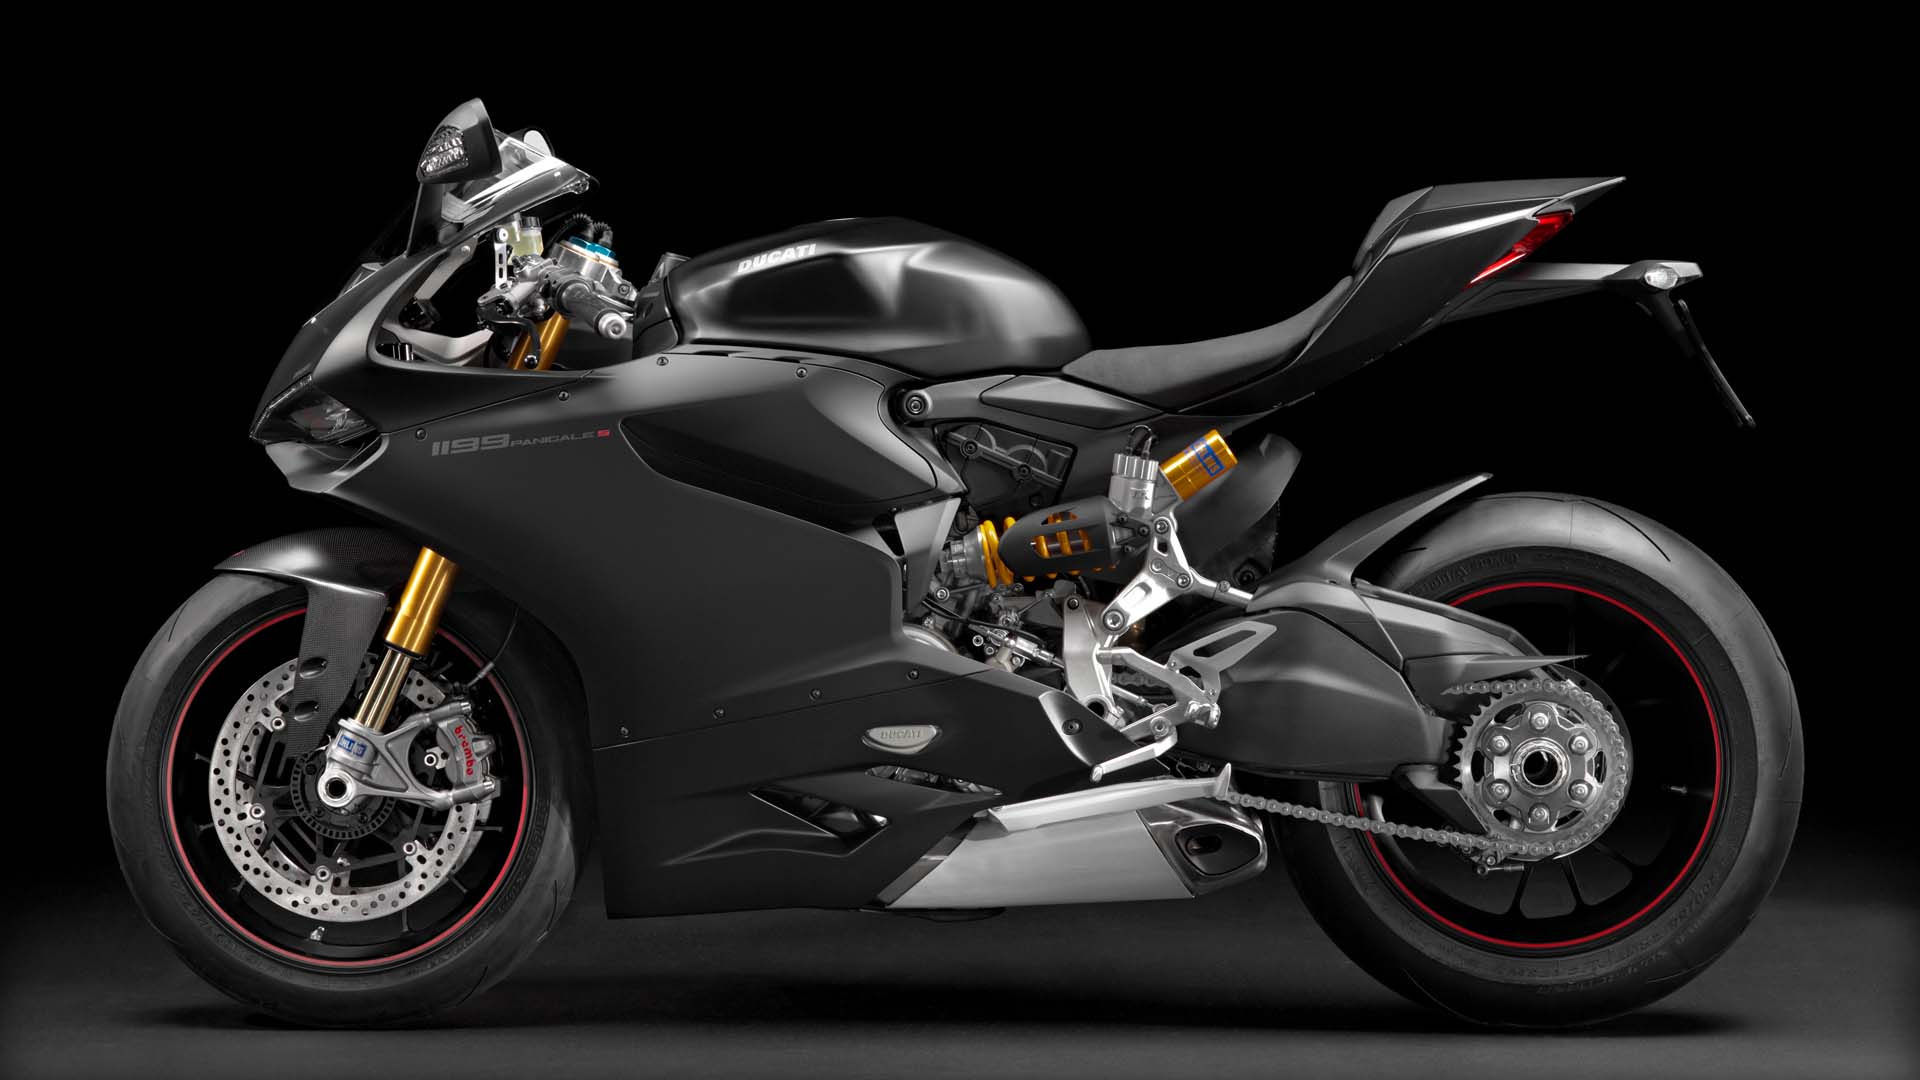 2014 Ducati 1199 PANIGALE S | Ducati 1199 Panigale S - Black Model Left Side